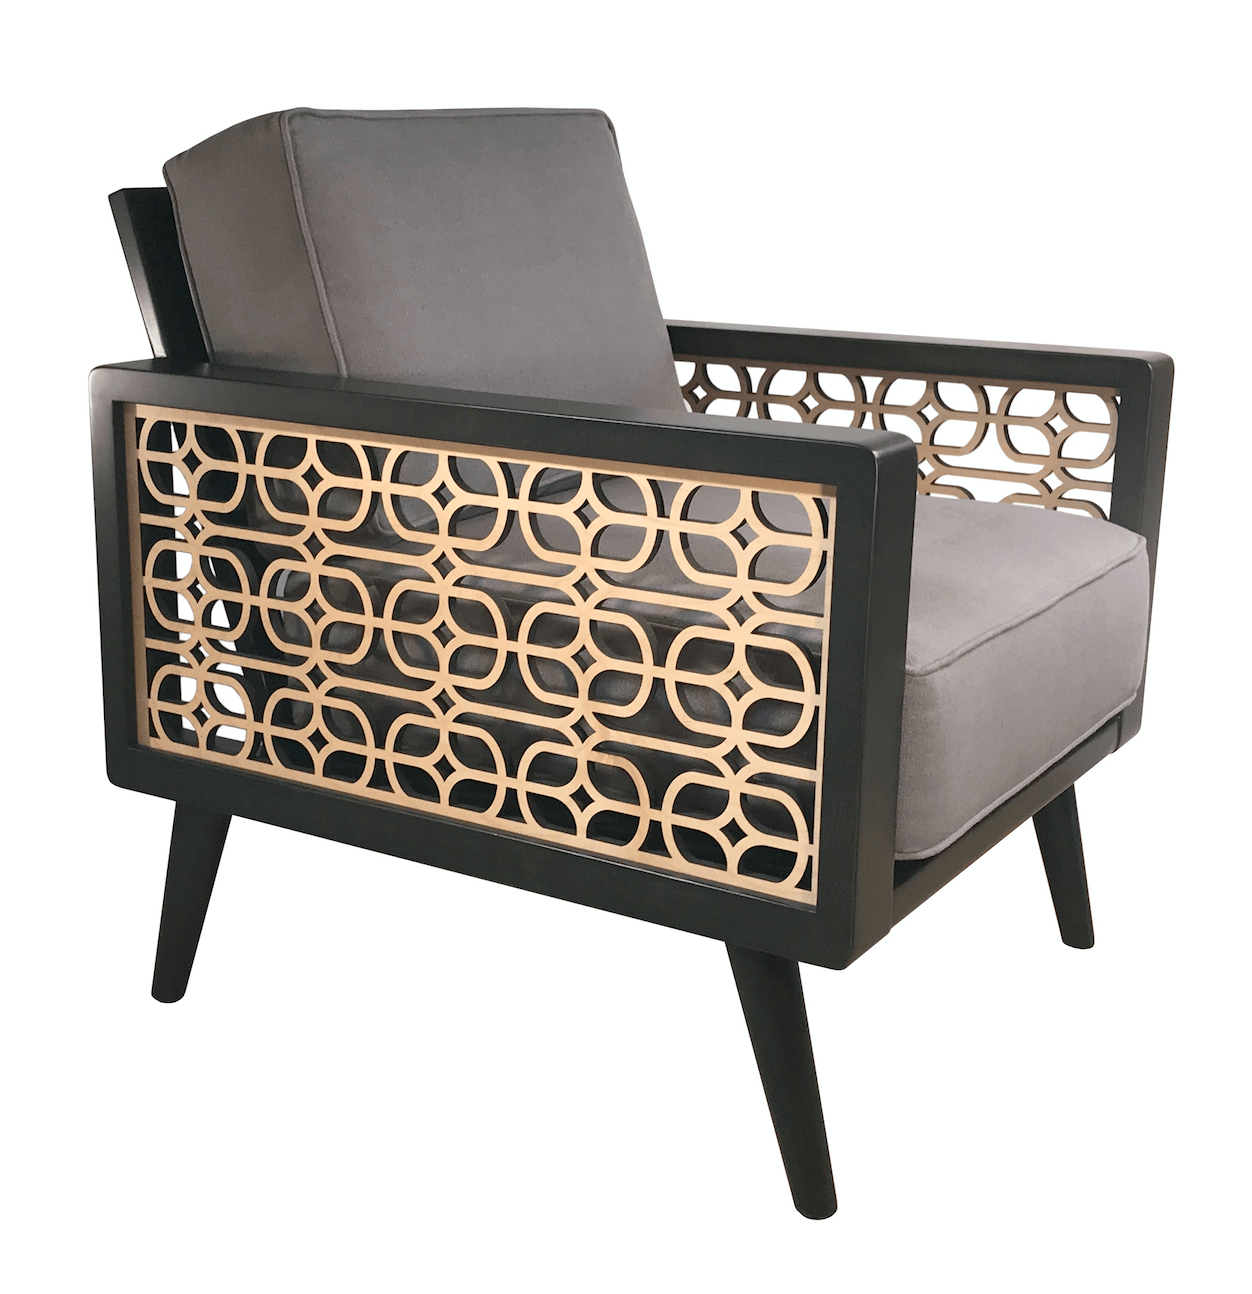 Mid century modern lounge grille chair for living room or office